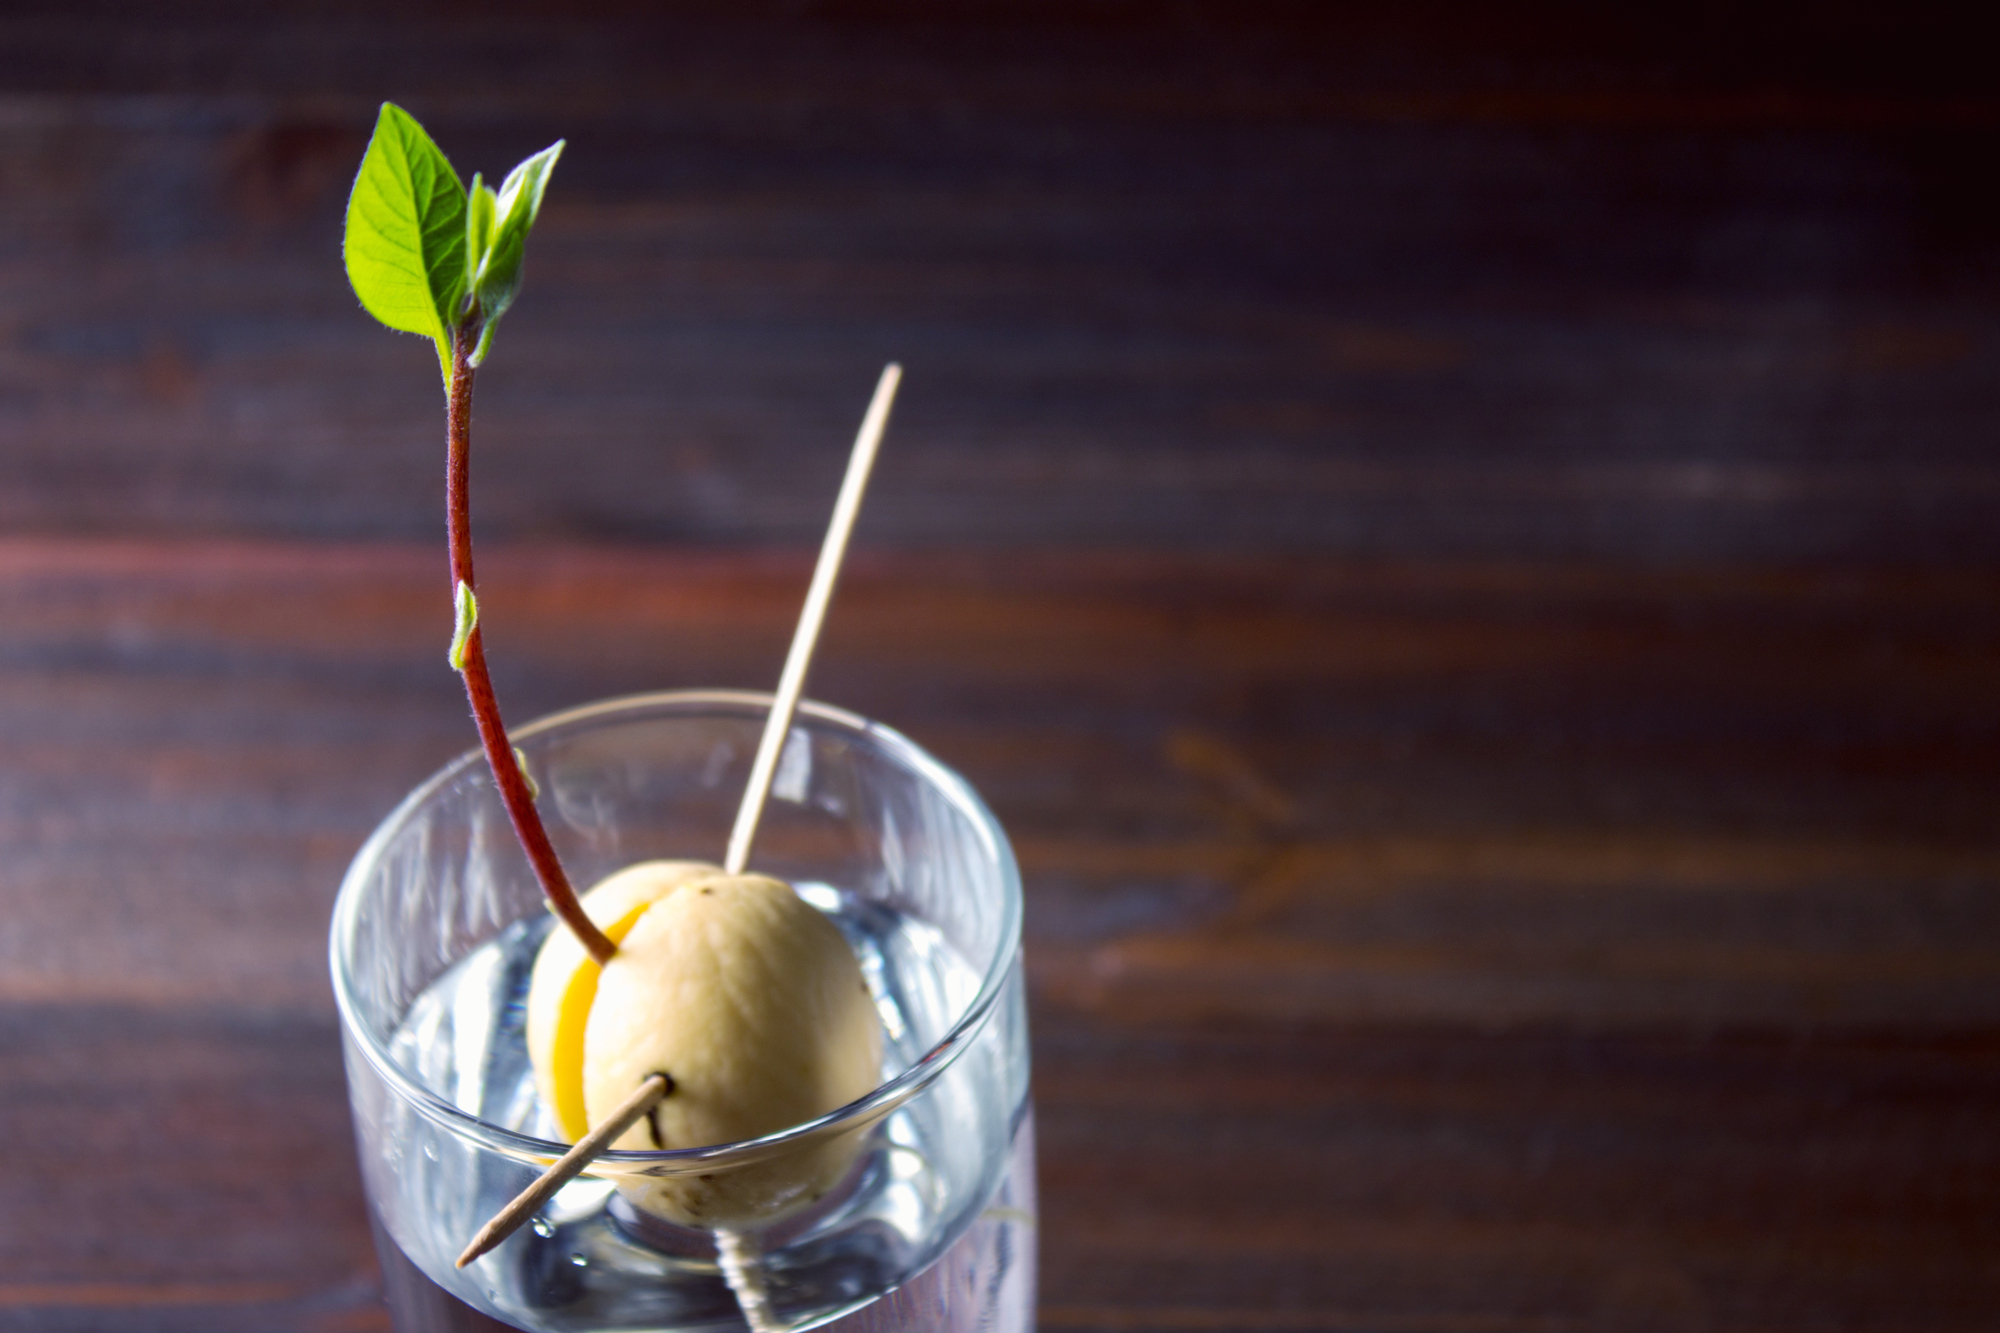 How to grow your own avocado tree at home